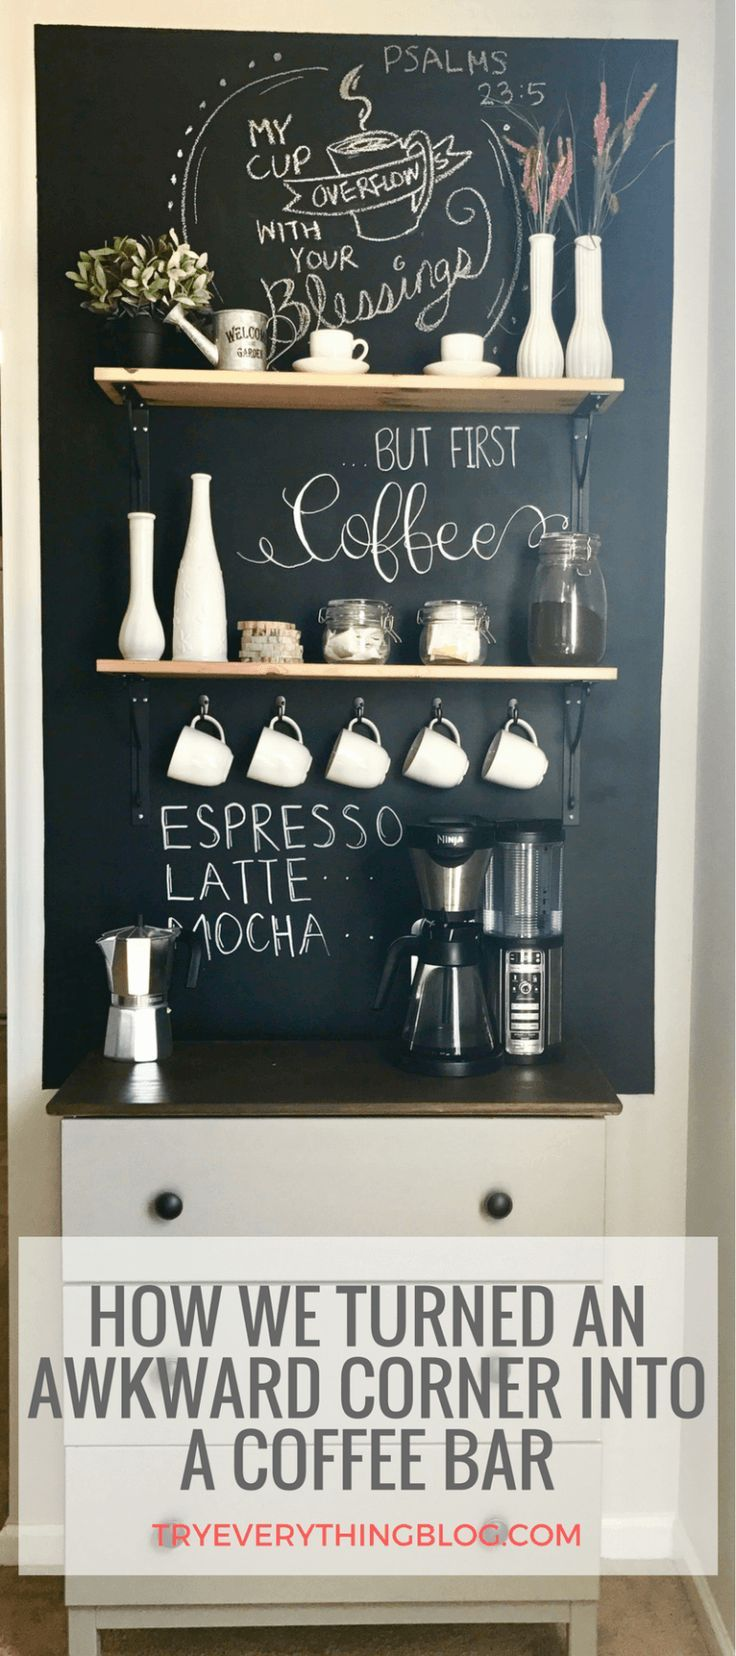 Transforming an awkward corner into a coffee bar at TryEverythingBlog...